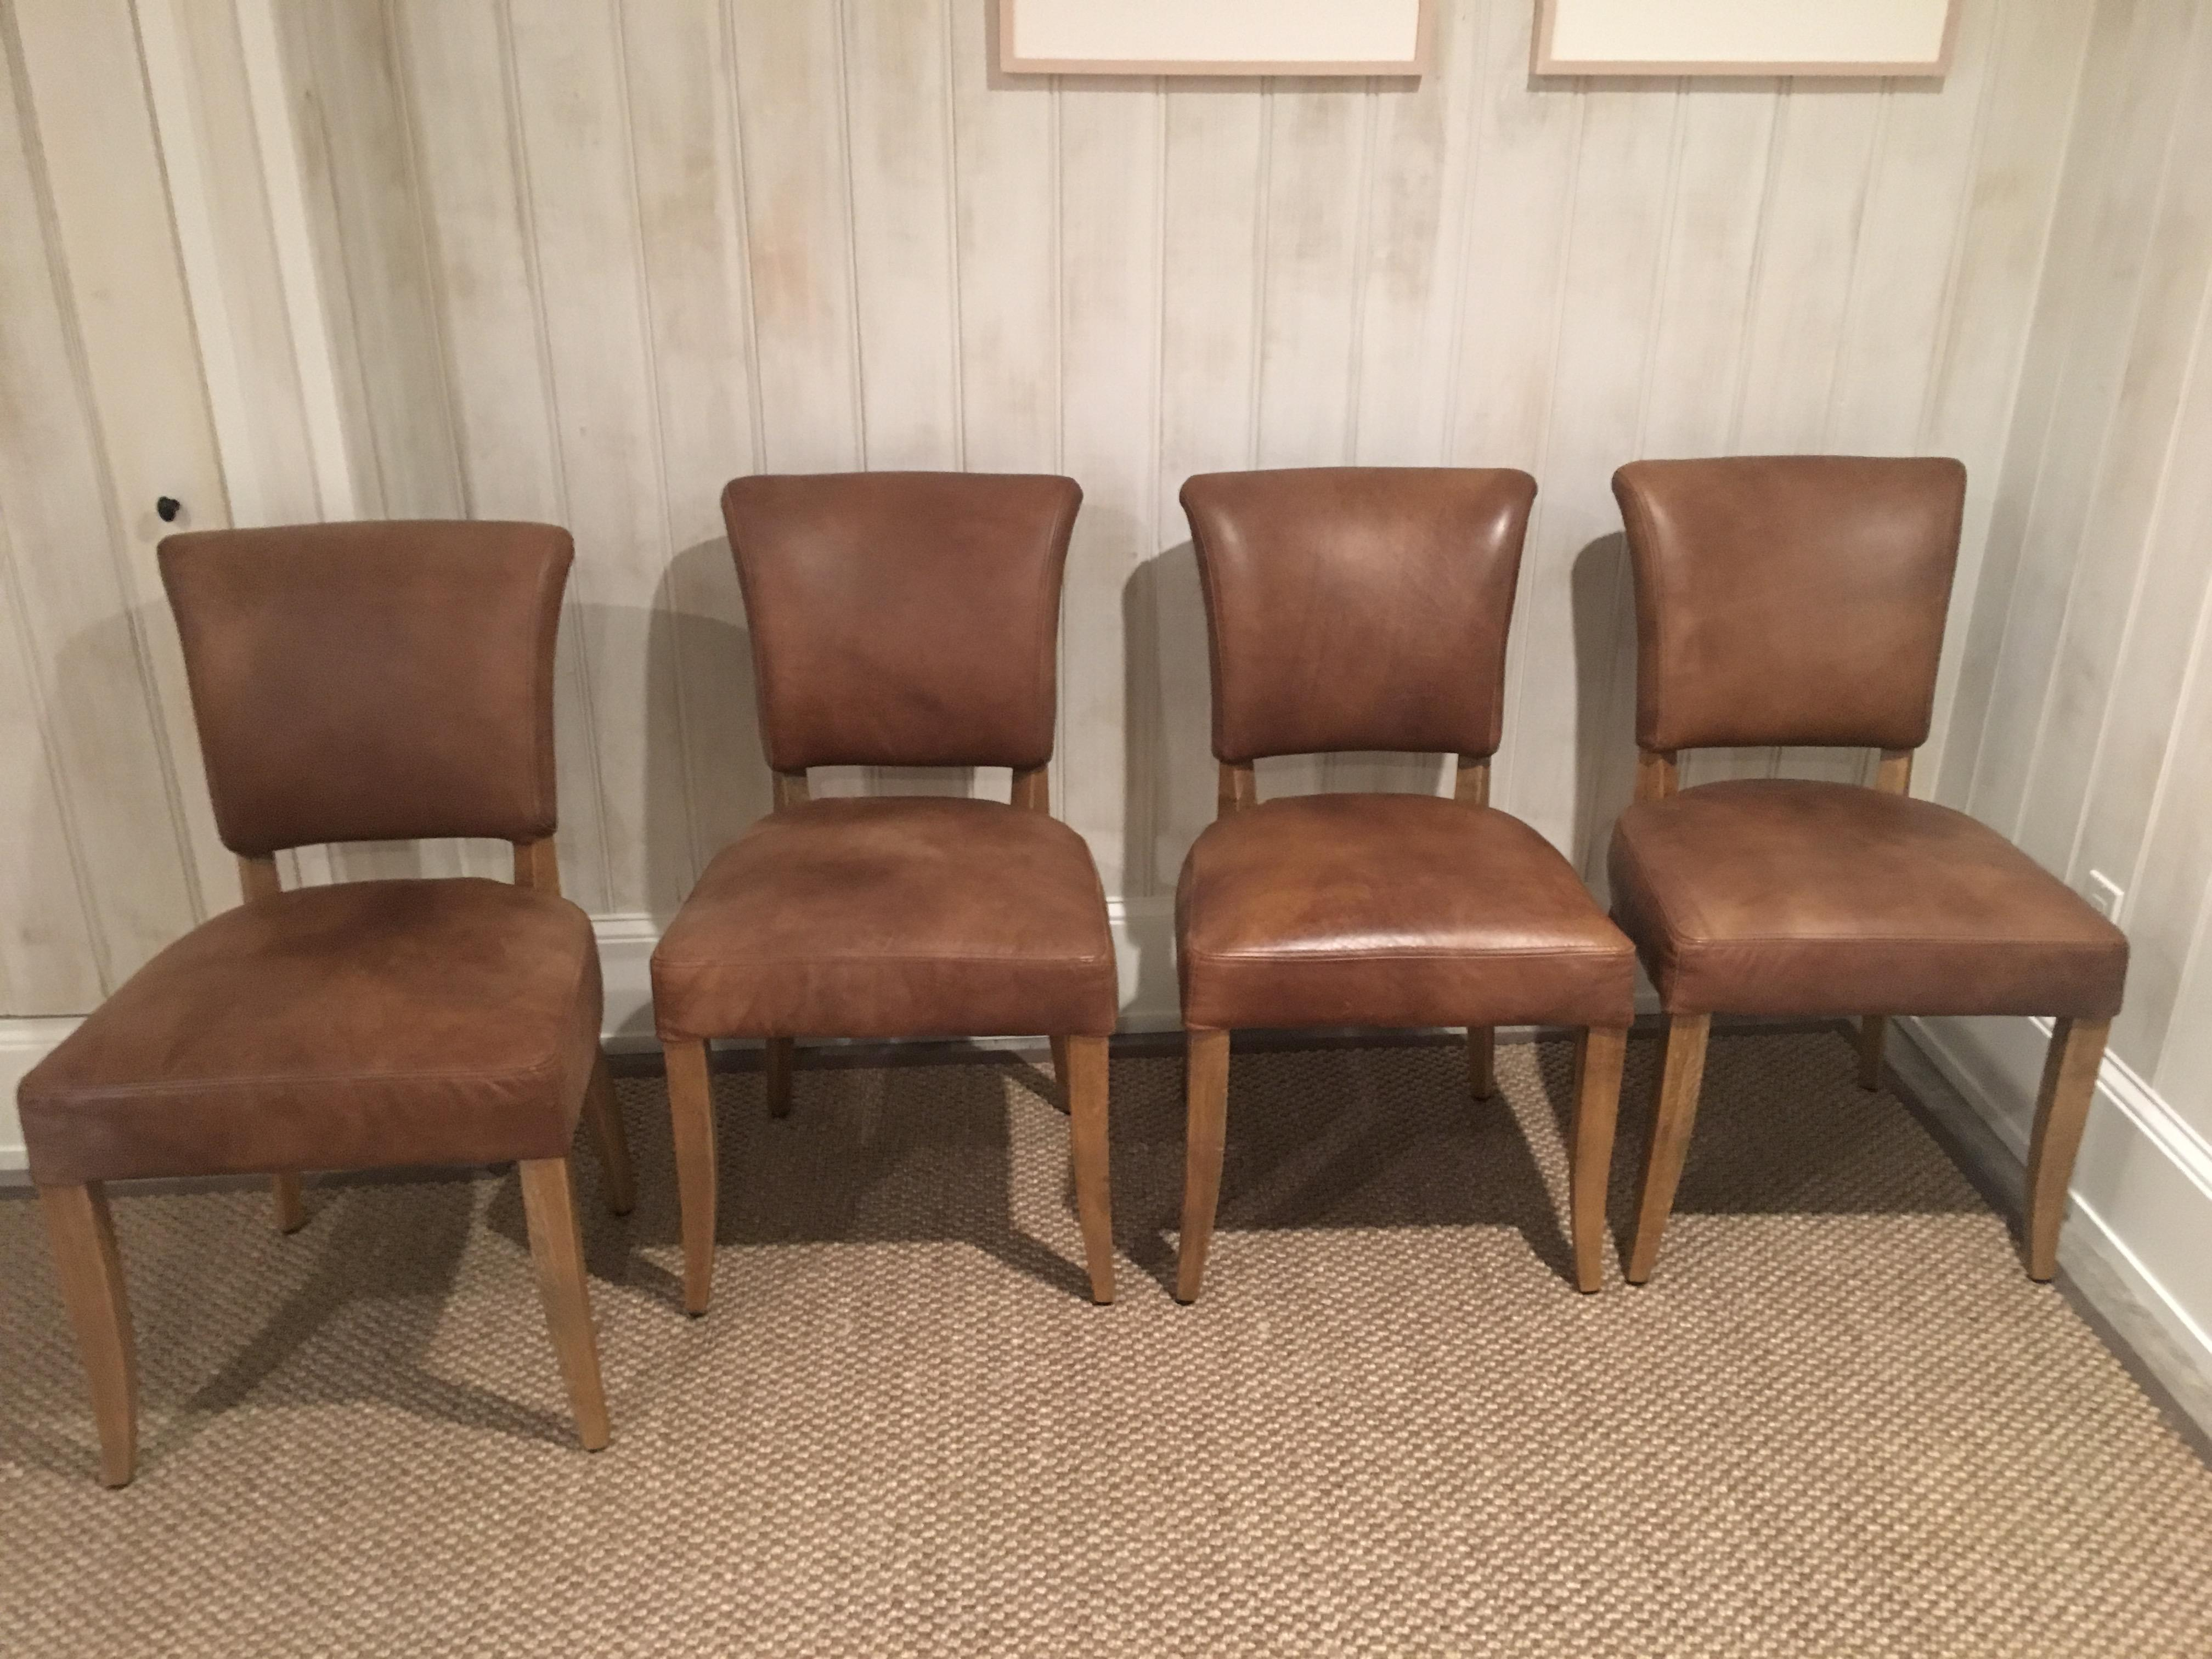 restoration hardware adele leather side chair image 5 of 5